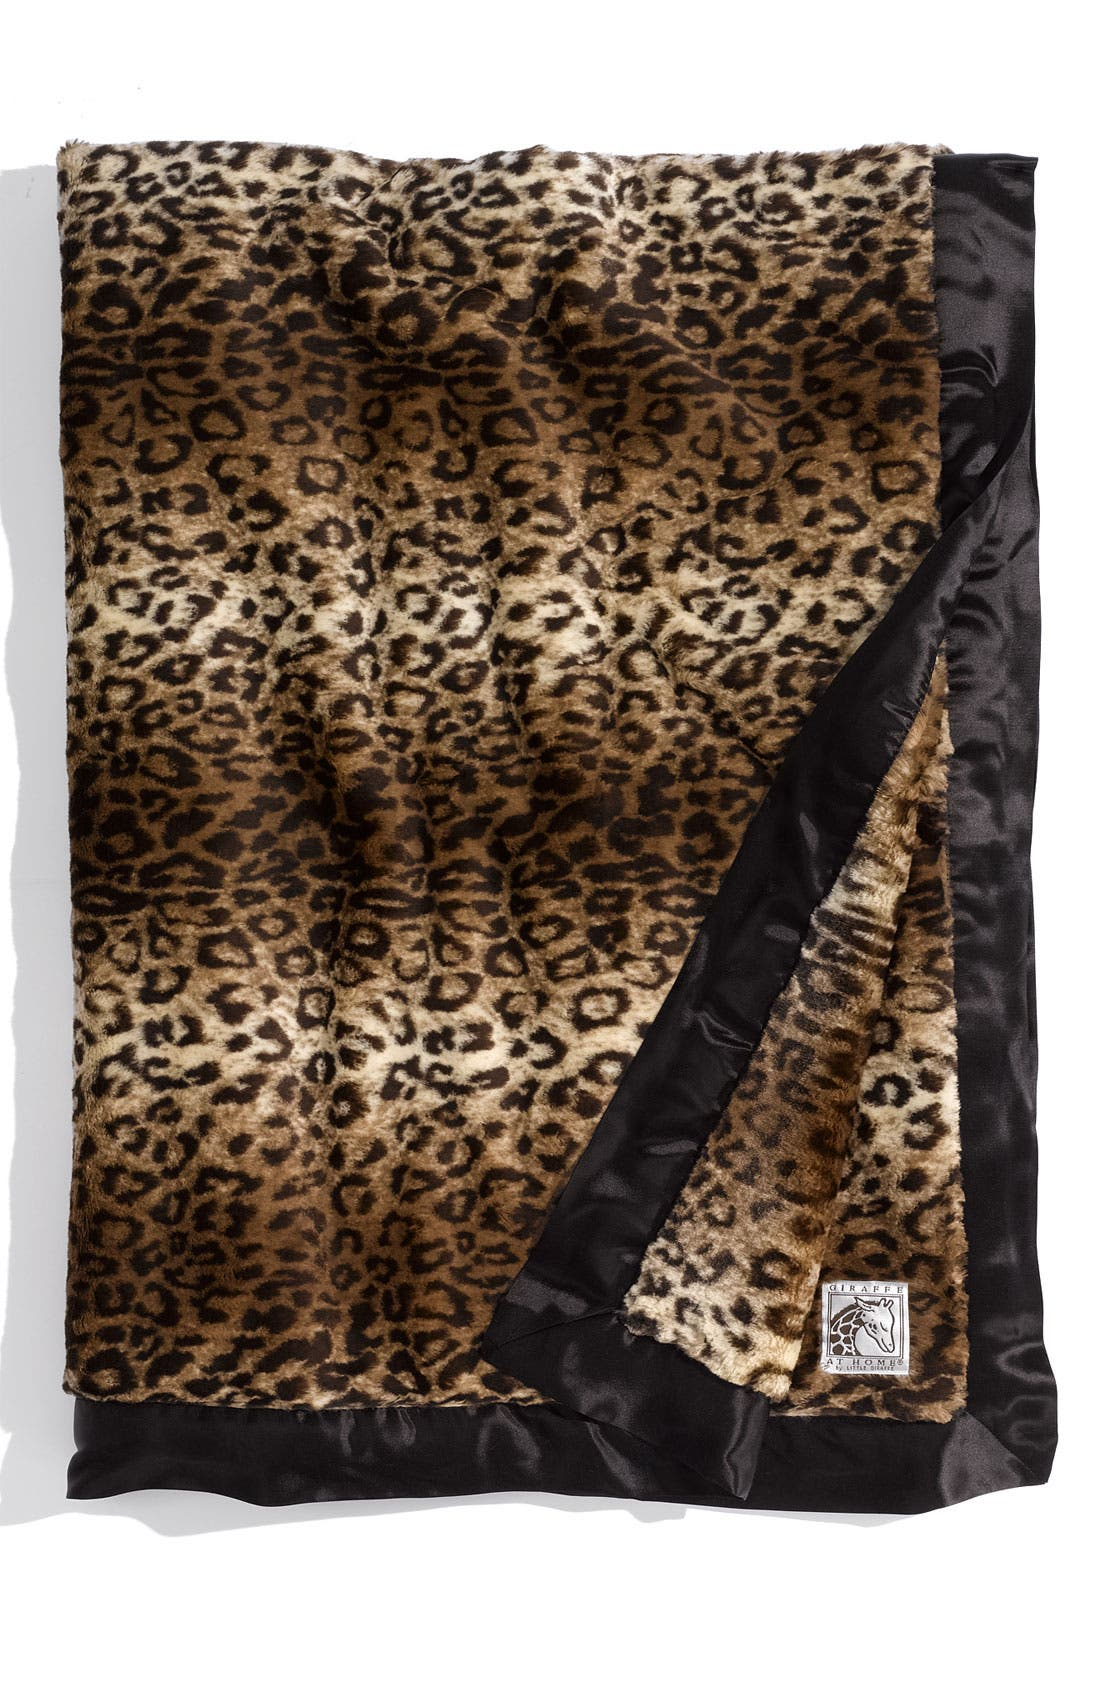 Giraffe at Home 'Luxe™ Leopard' Throw